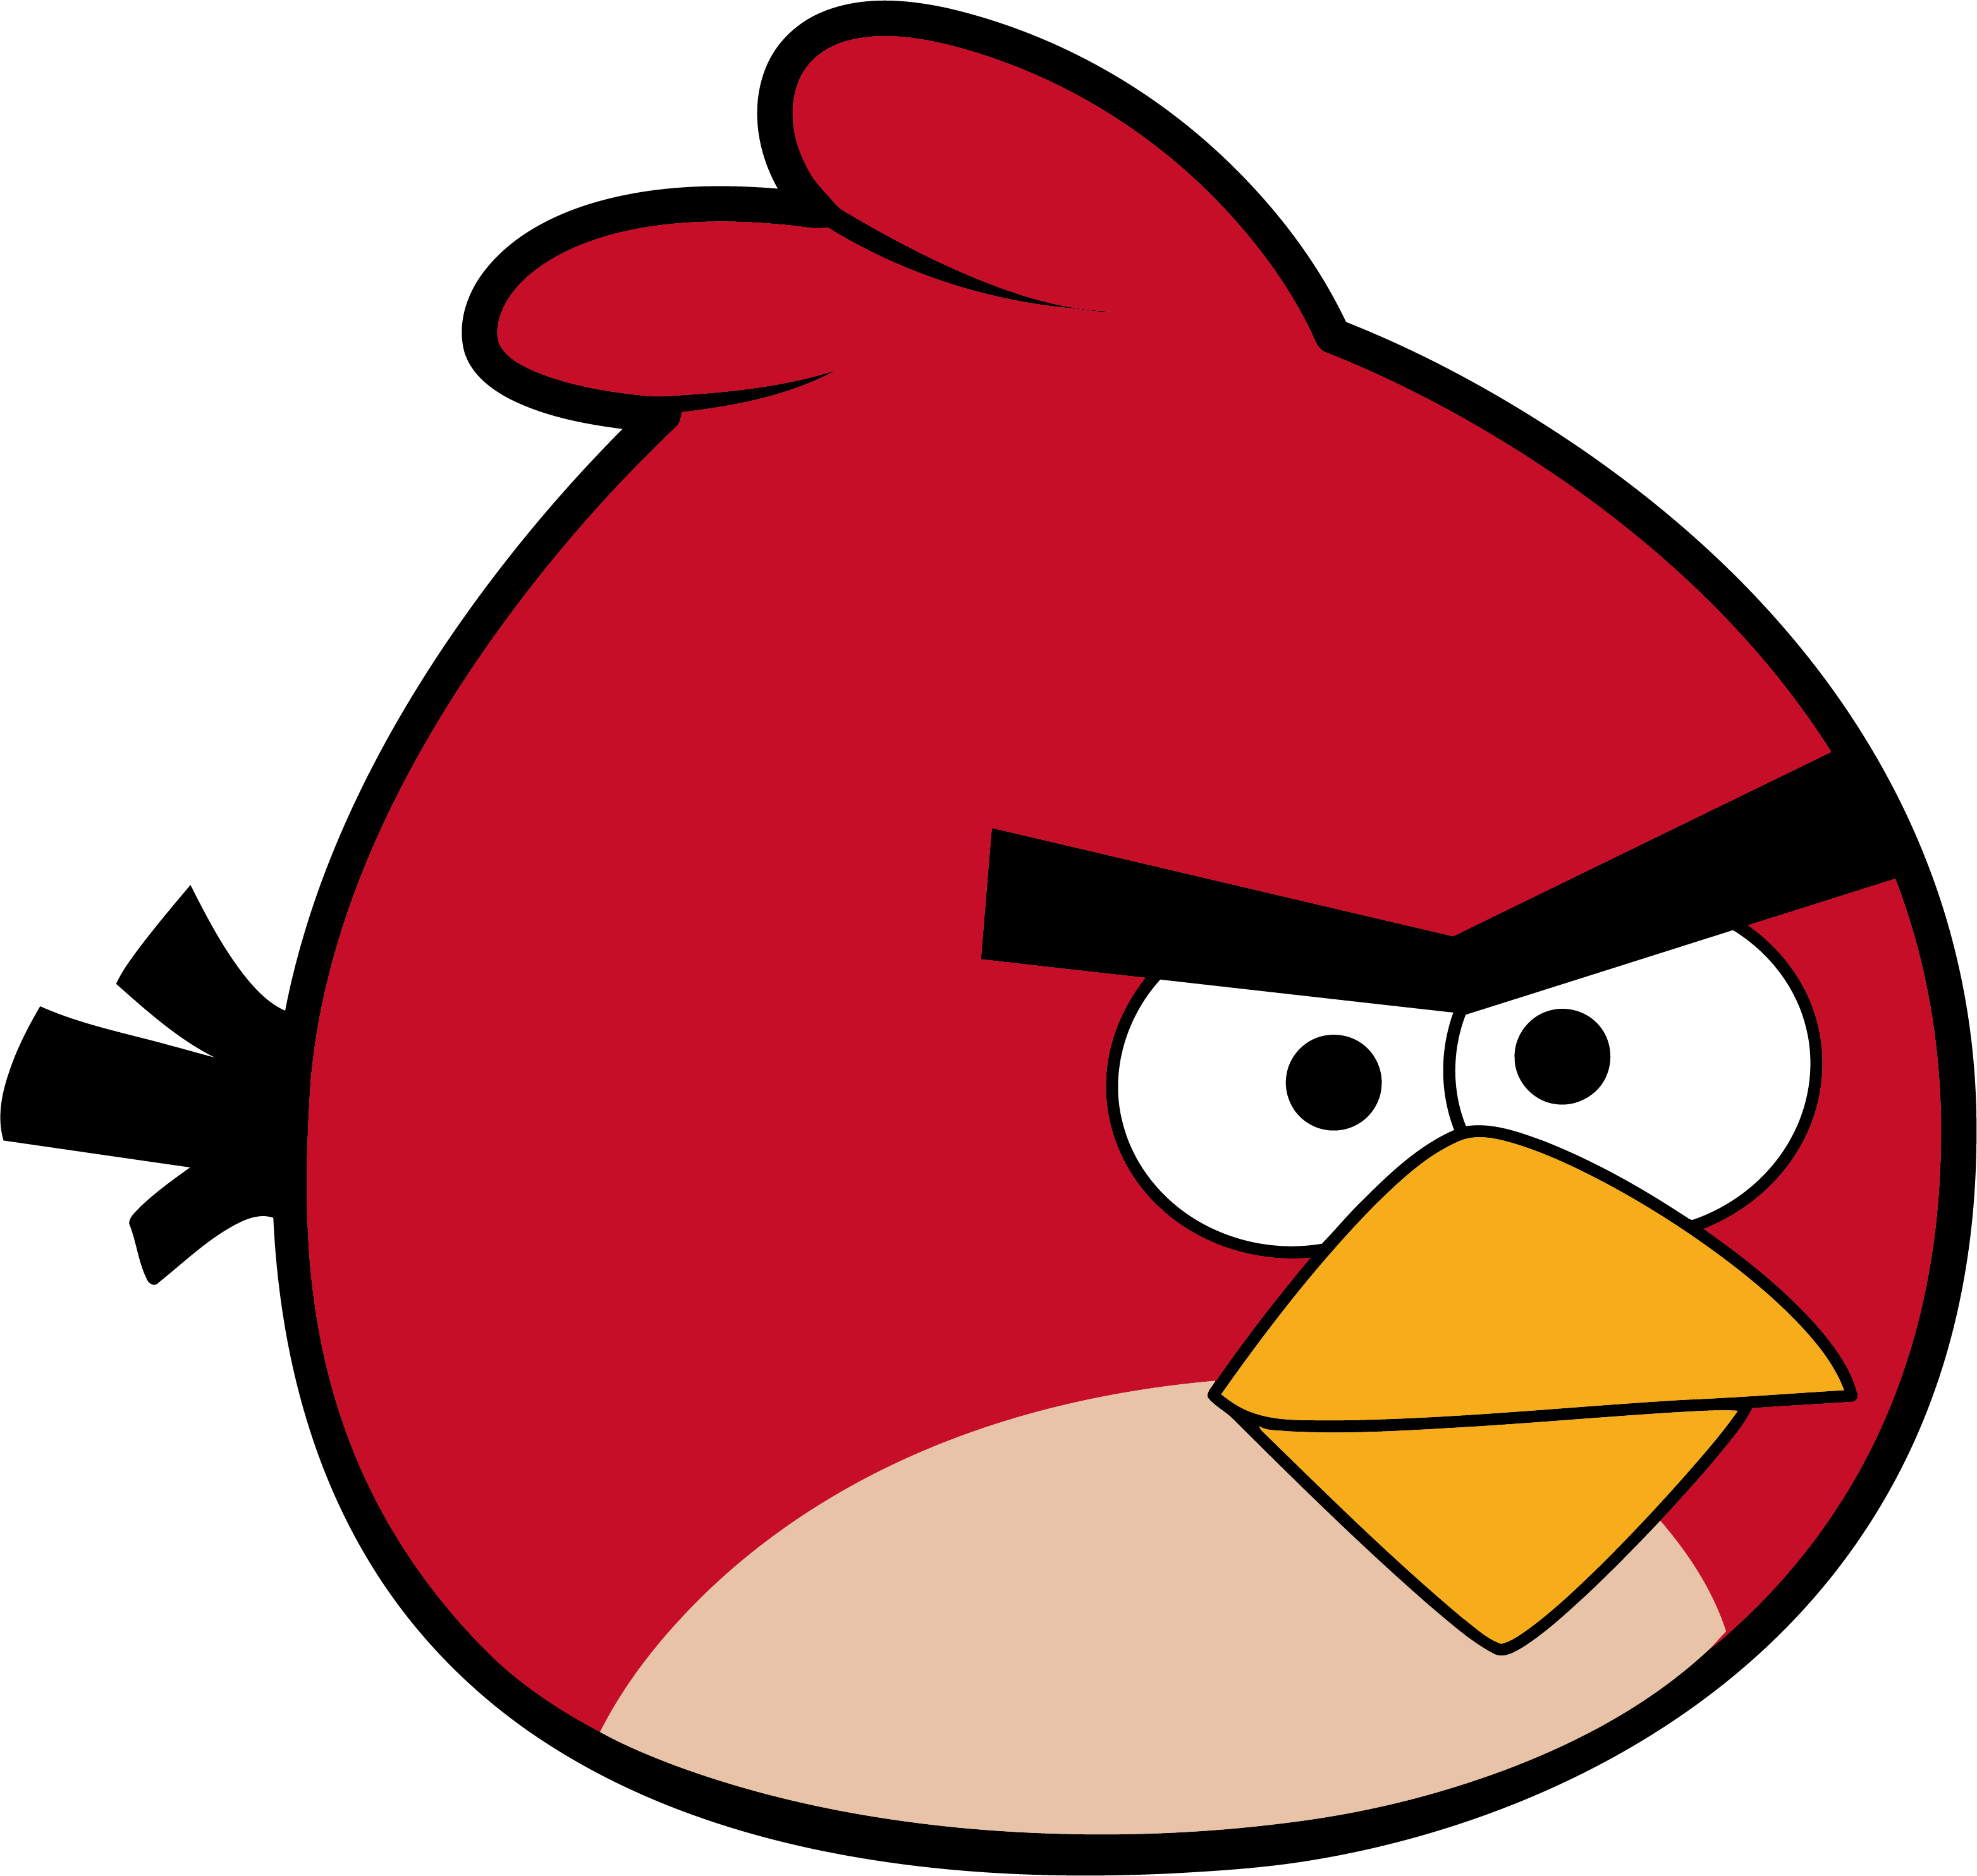 Angry bird clipart 5 » Clipart Station.